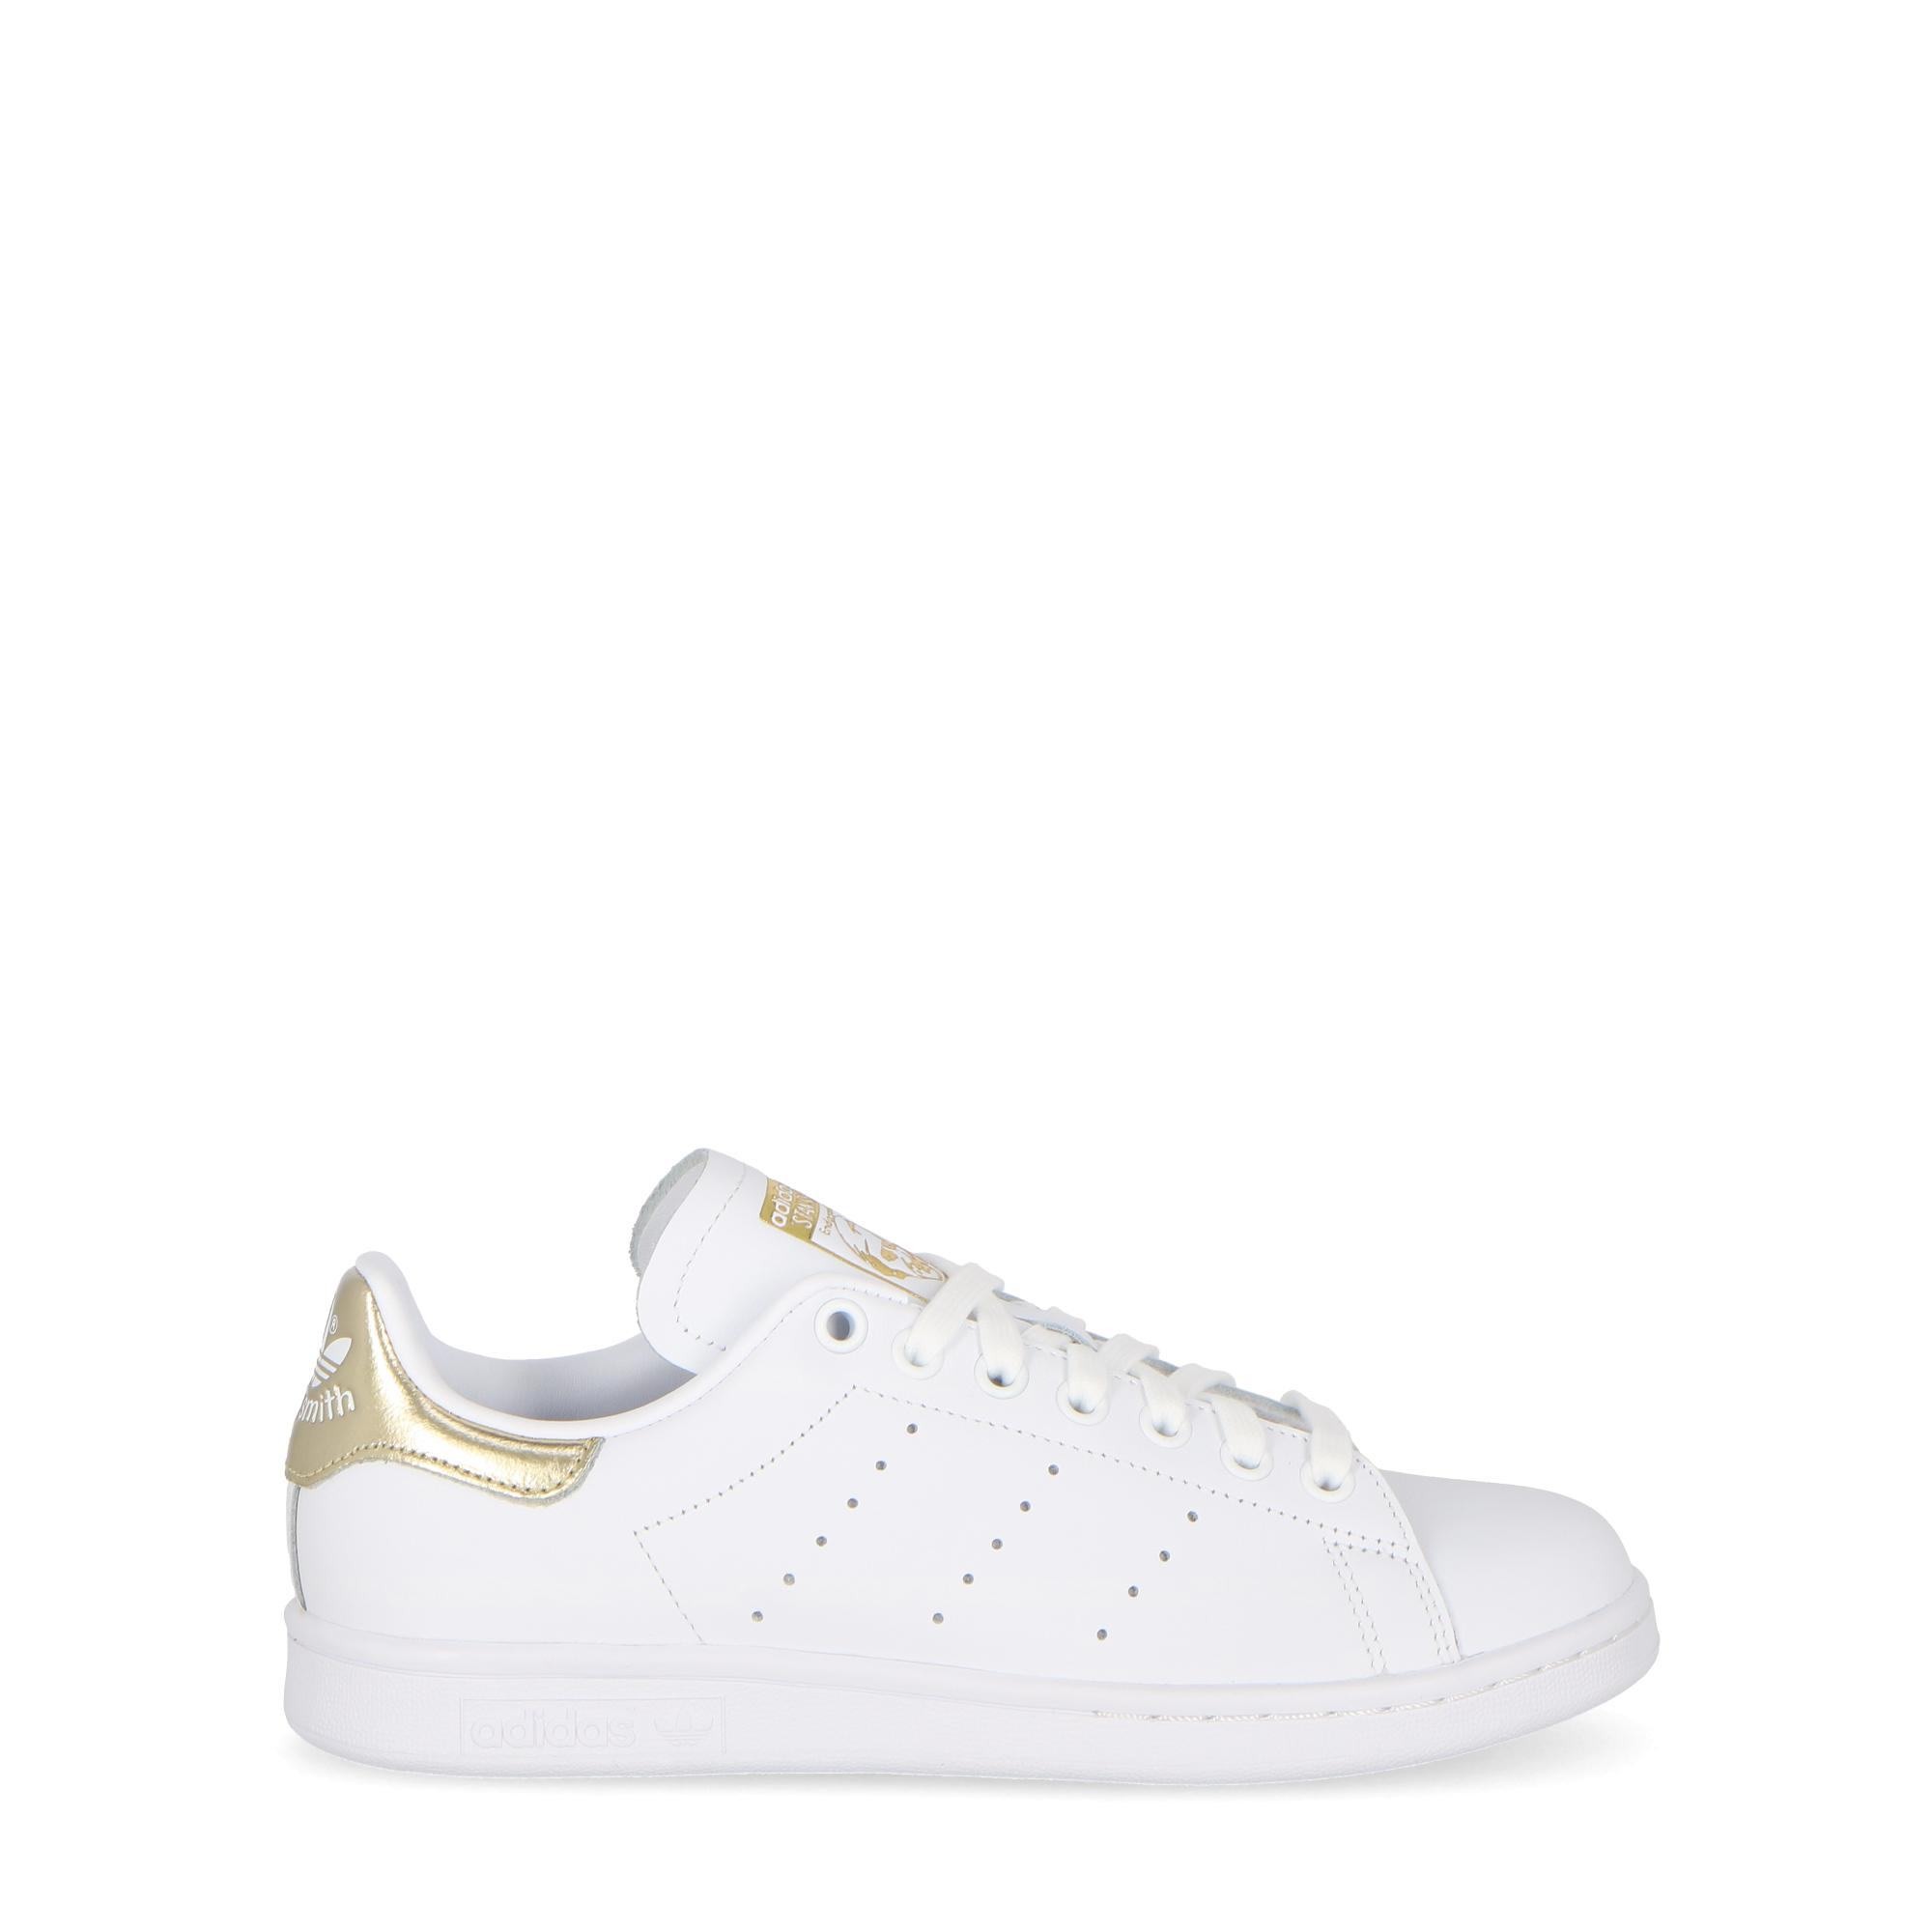 new concept b7193 bbfd5 Adidas Stan Smith WHITE GOLD